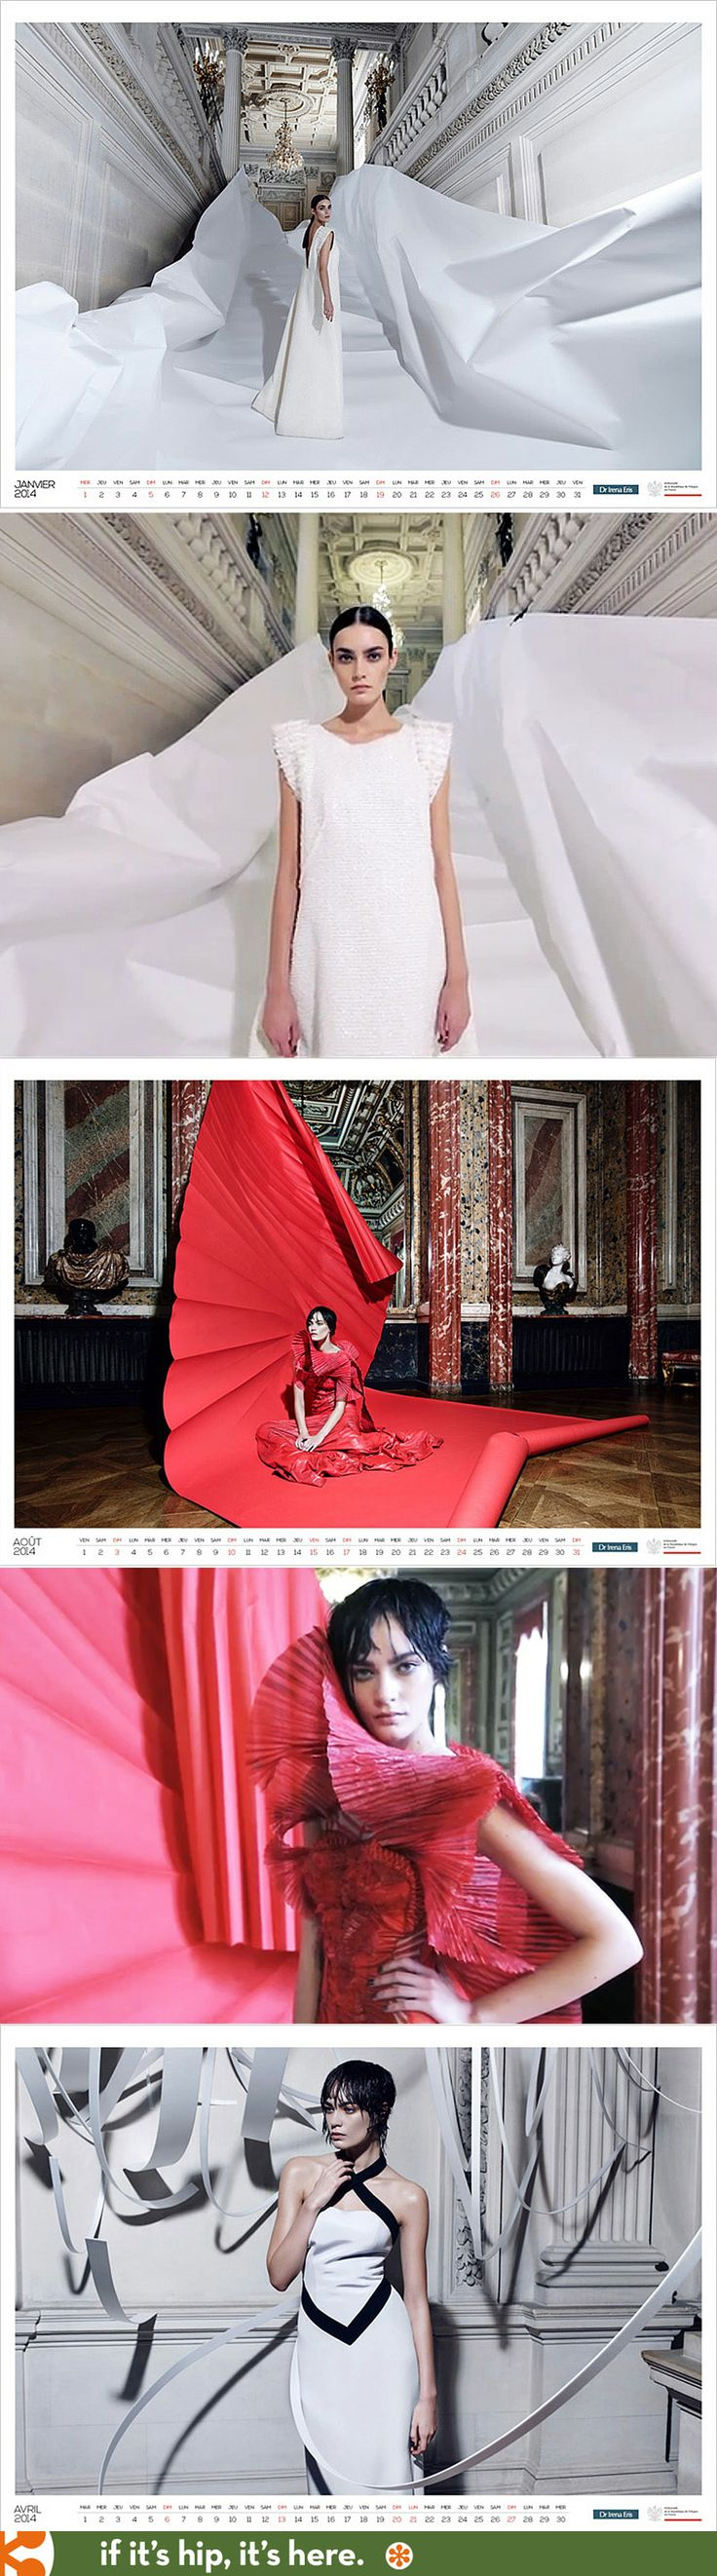 The Beautiful Polish Embassy of Paris 2014 Calendar. See the entire calendar at the link.